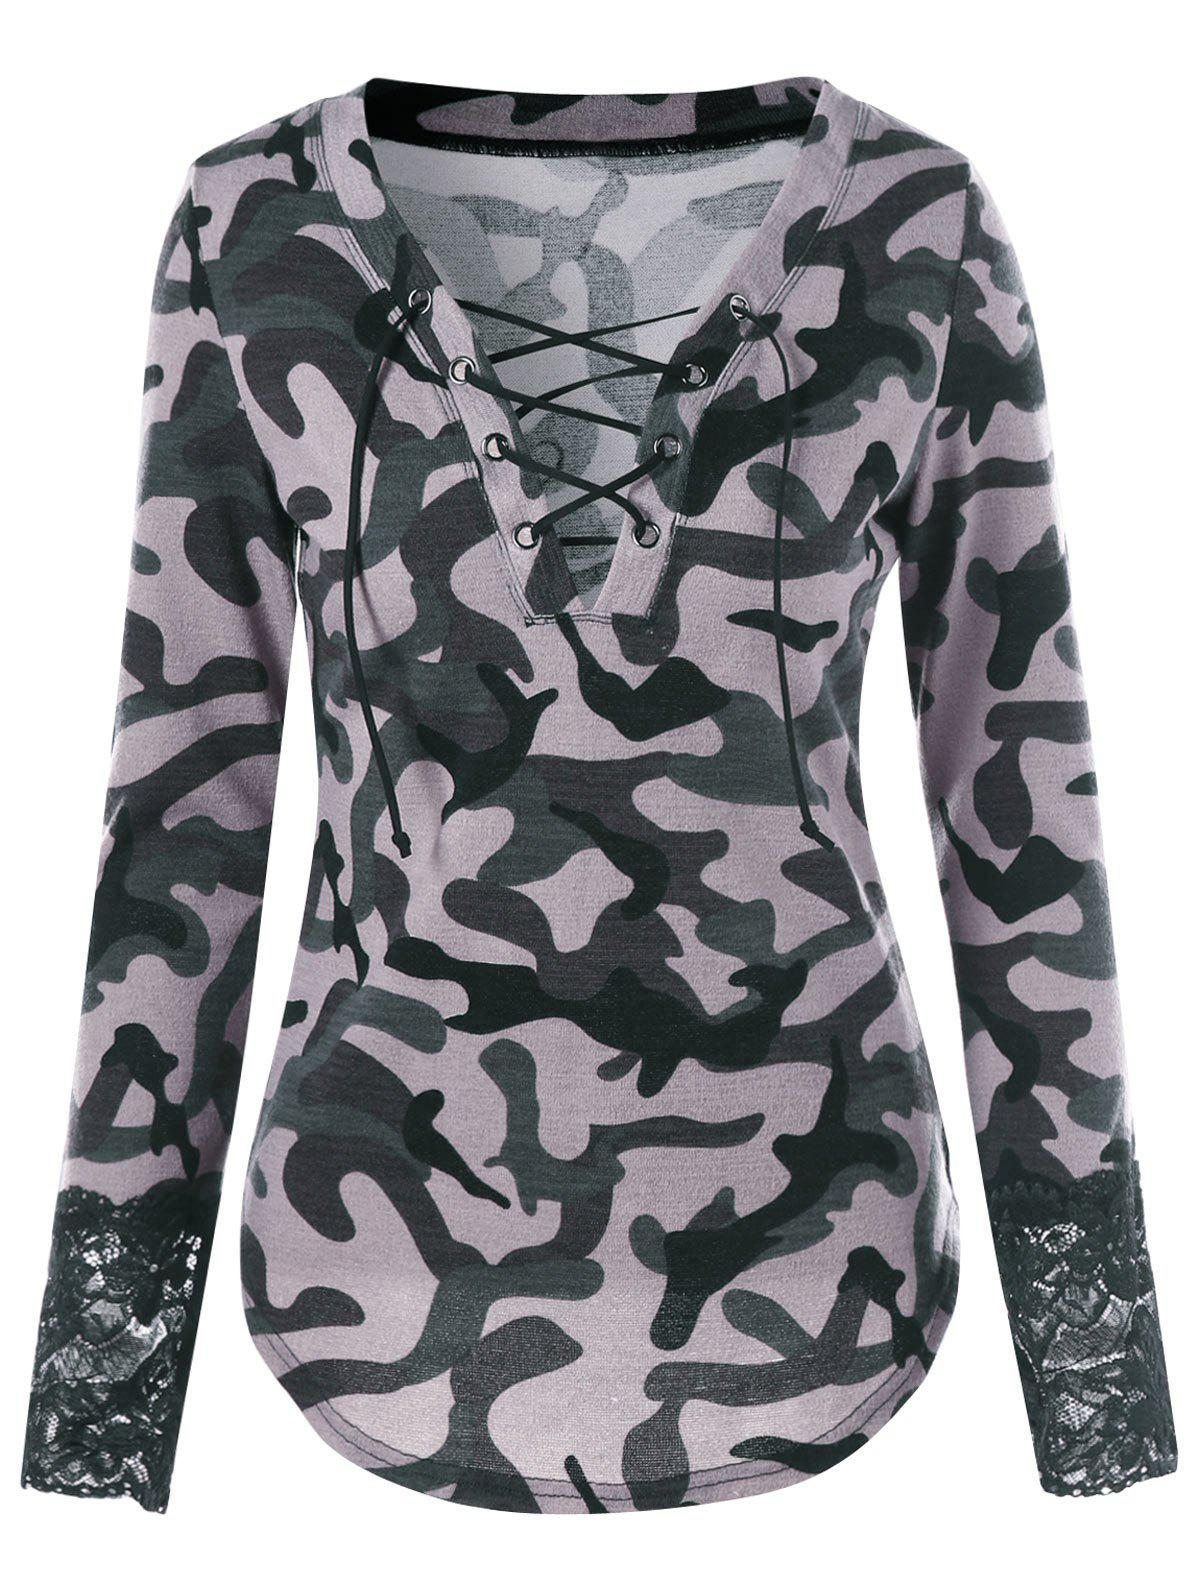 Lace Up Camouflage Lace Panel T-shirt zip up camouflage panel hoodie and sweatpants